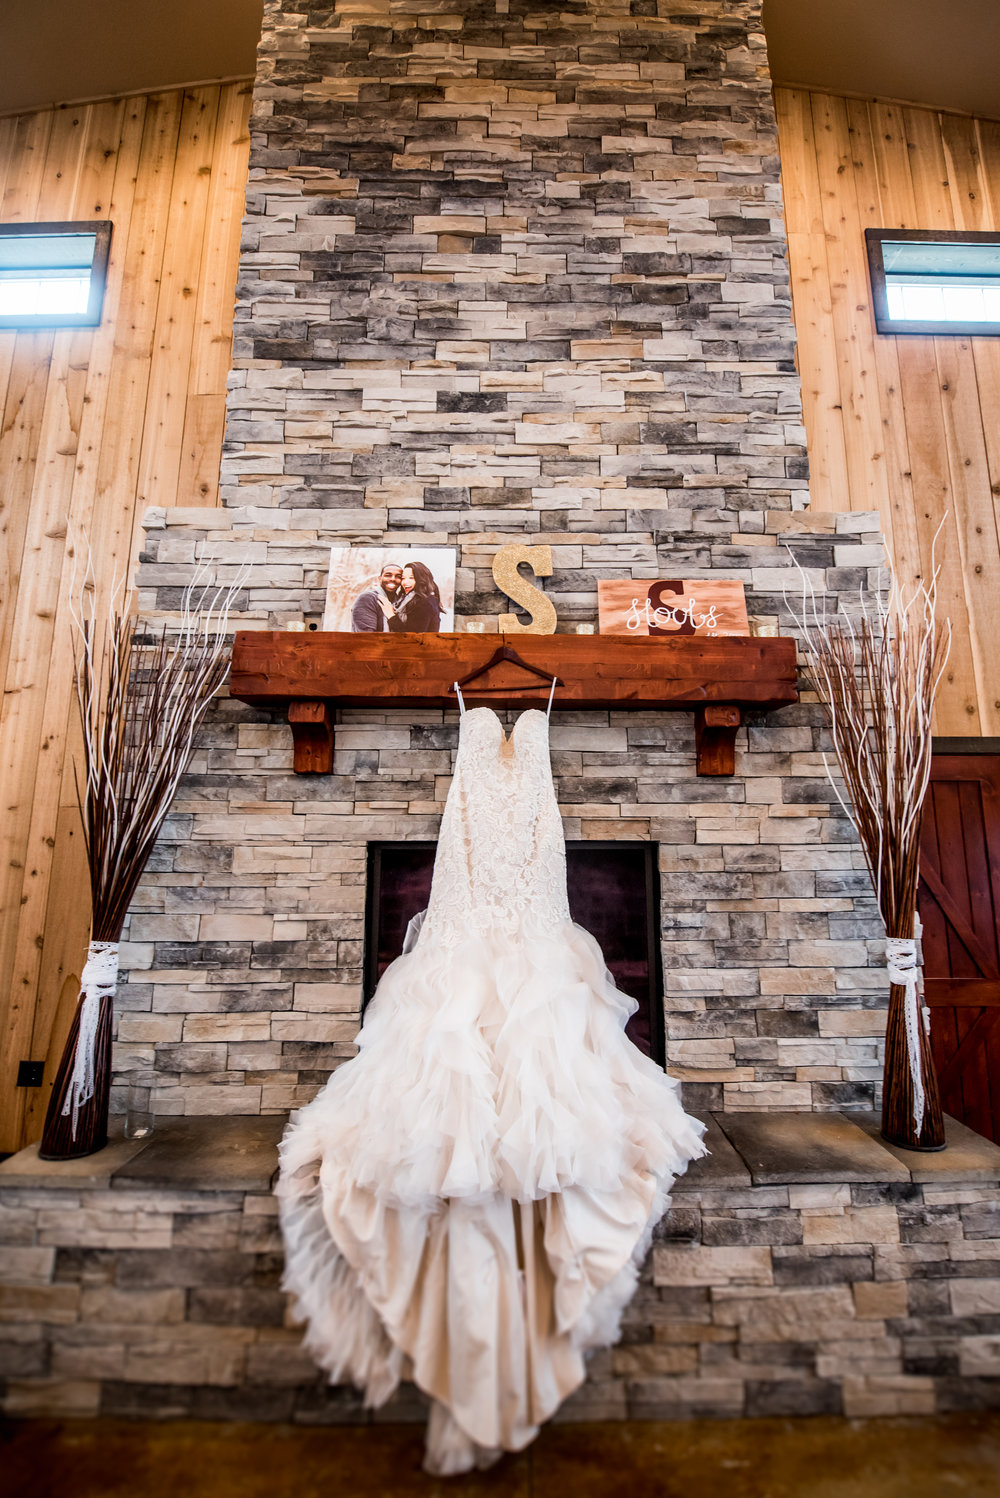 Burlington Iowa Wedding Midwest Photographer Melissa Cervantes _ Chantelle and Isaiah 1.jpg